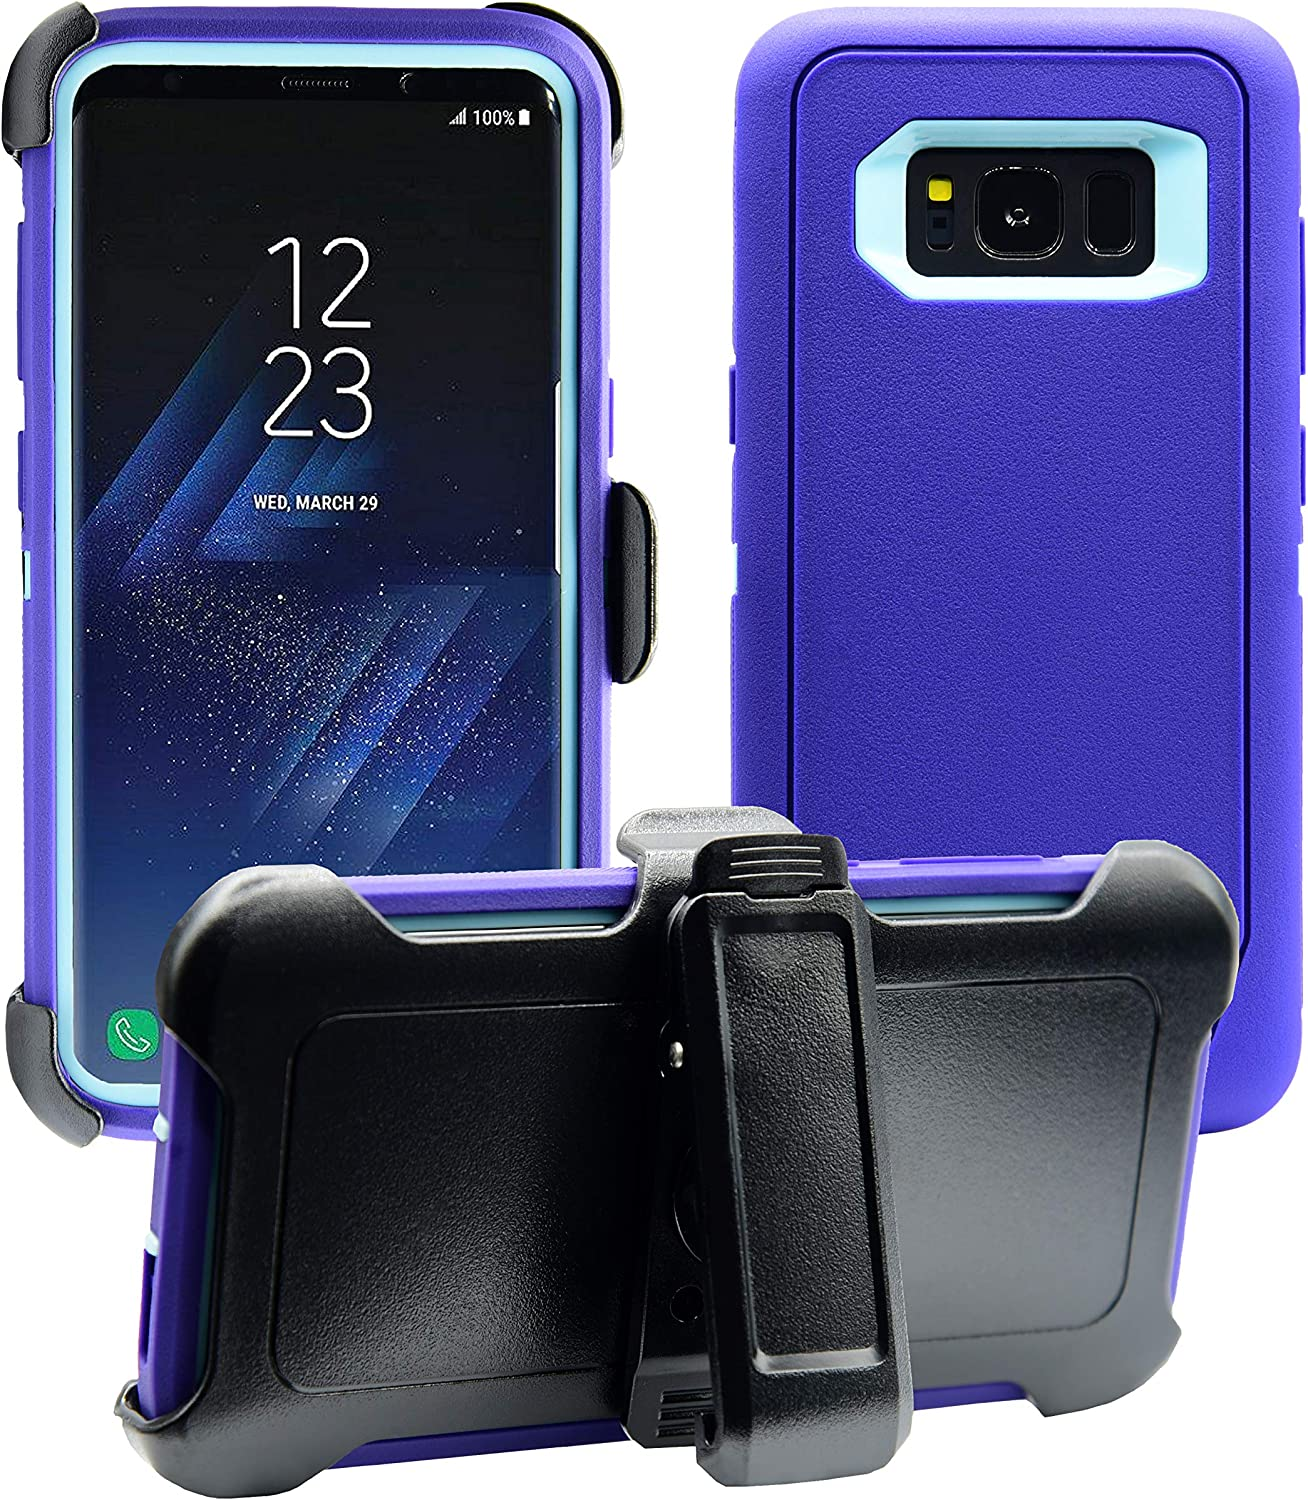 AlphaCell Cover Compatible with Samsung Galaxy S8 | Holster Case Series | Military Grade Protection with Carrying Belt Clip | Protective Drop-Proof Shock-Proof | Purple/Teal